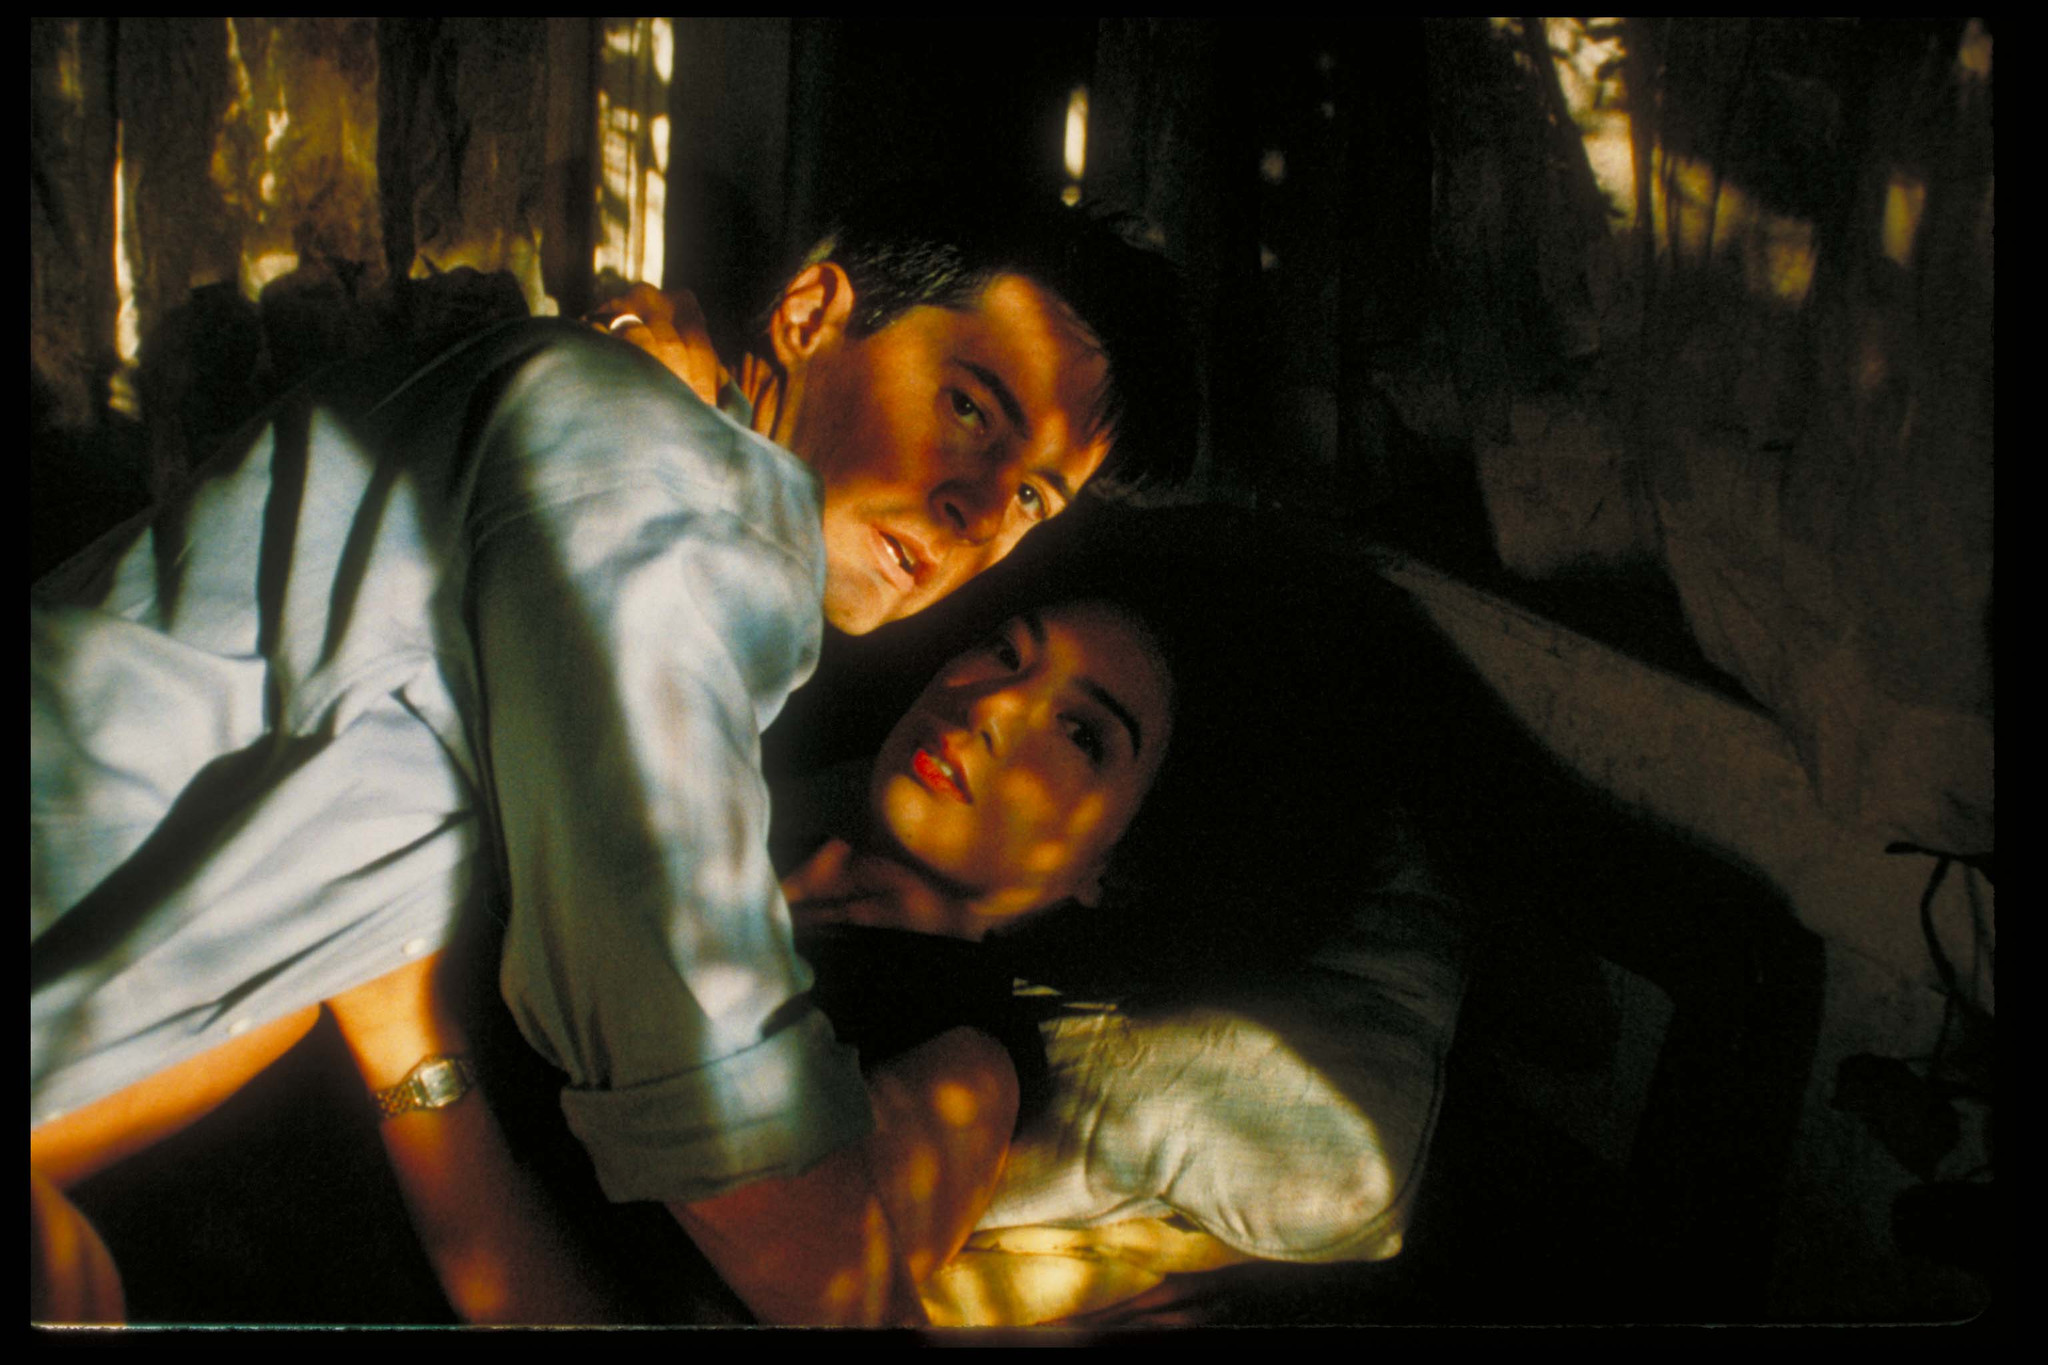 Kyle MacLachlan and Ming-Na Wen in One Night Stand (1997)